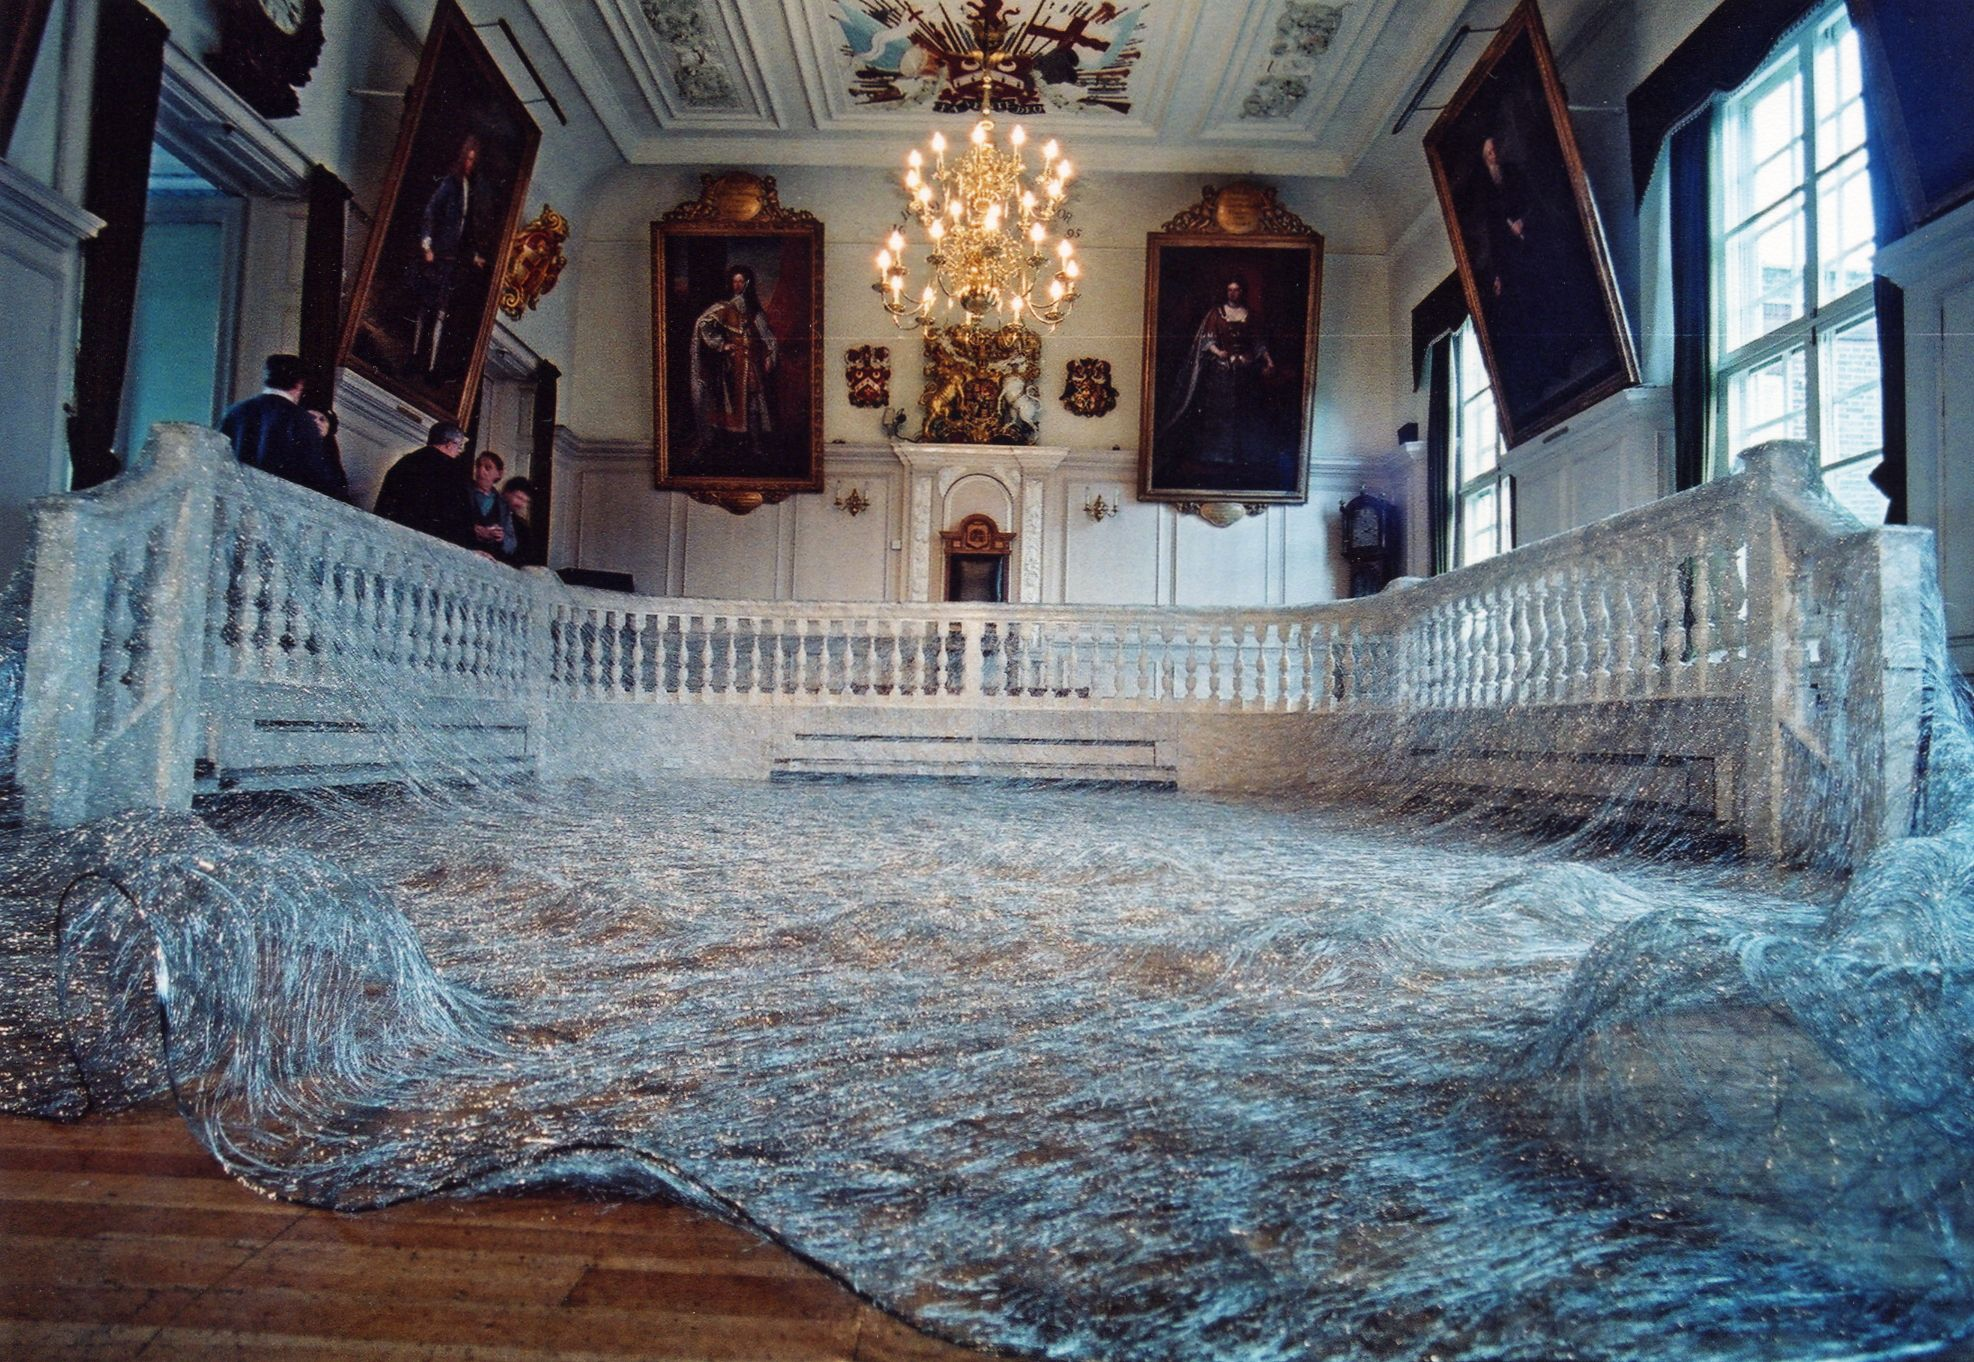 Textural space by Kyoko Kumai (exhibition by Lesley Millar)